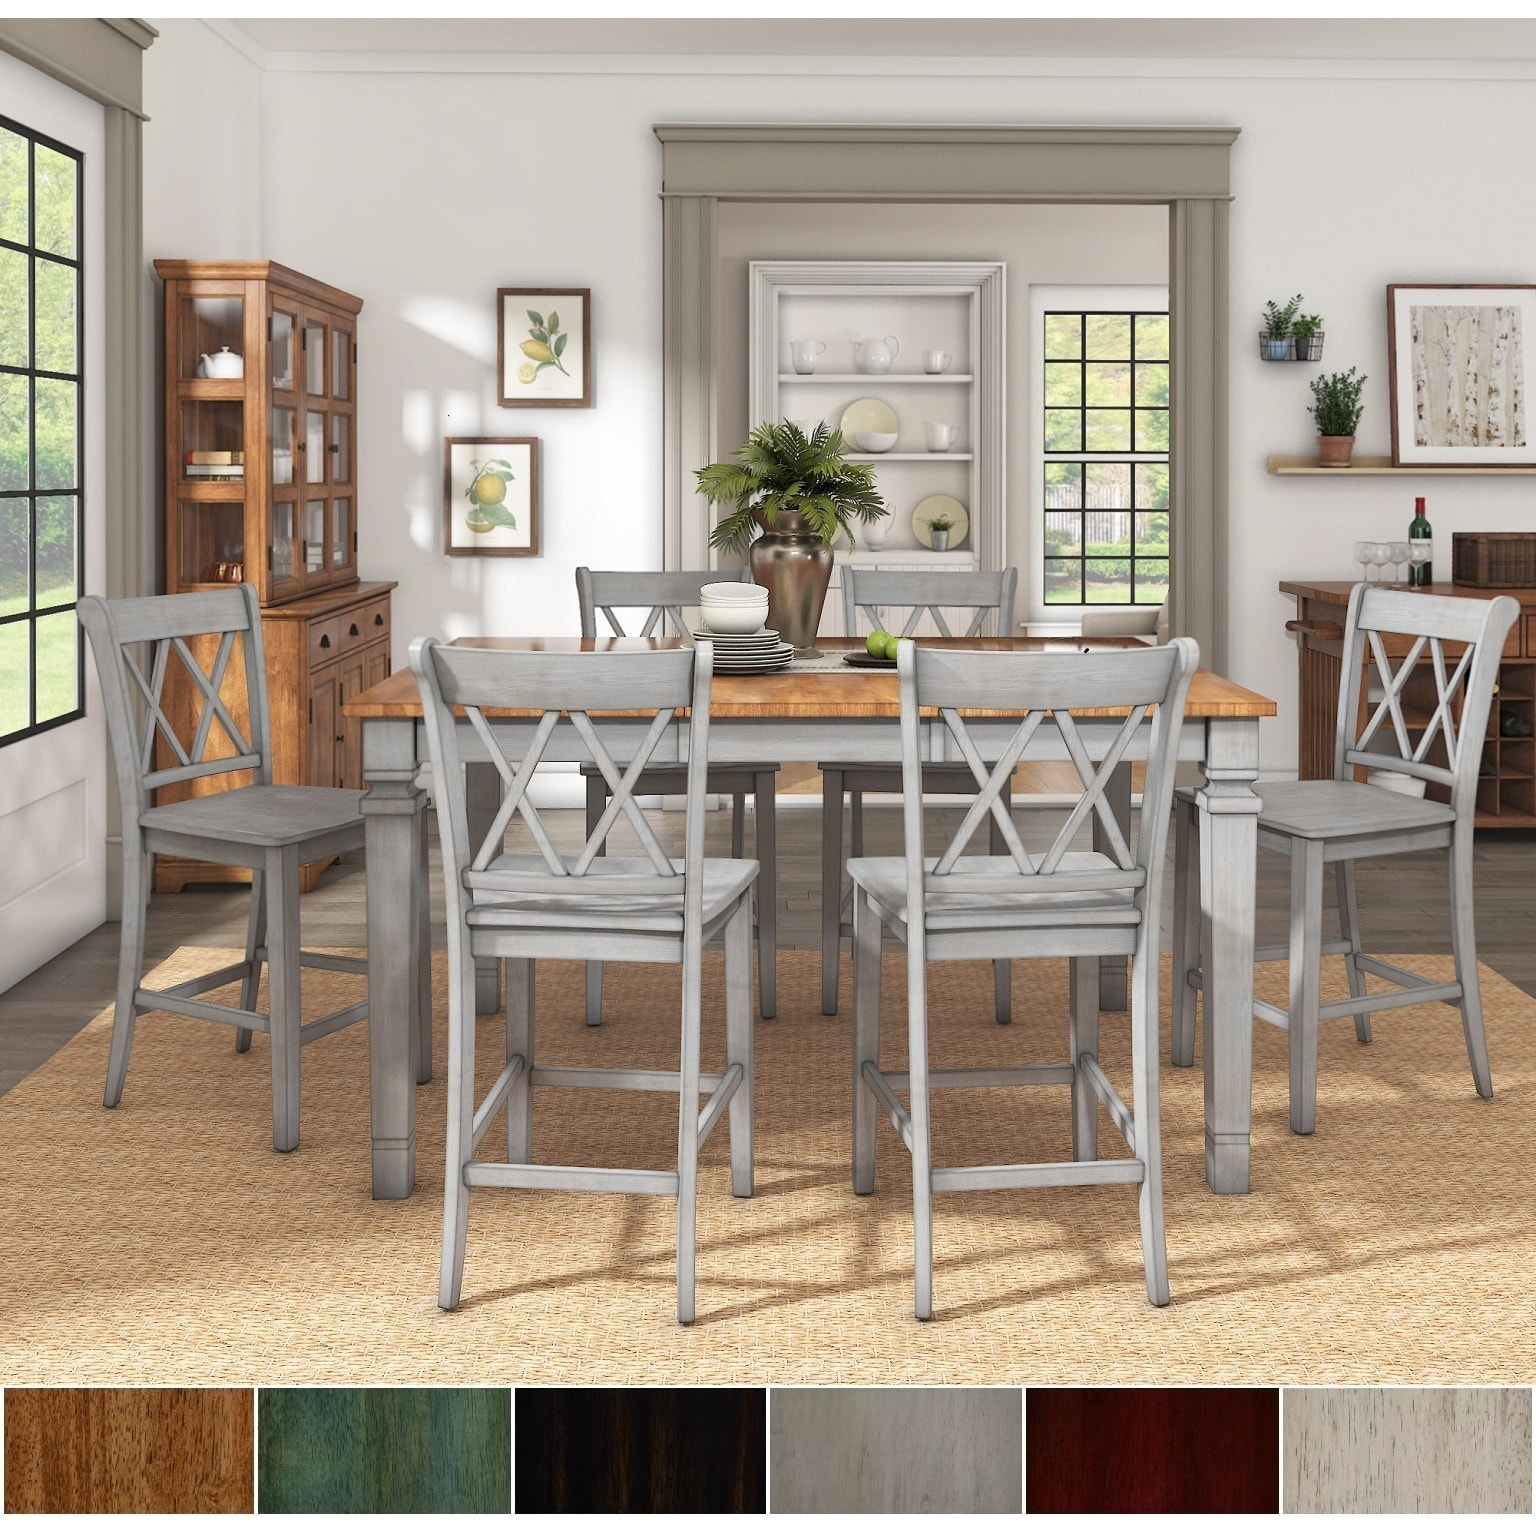 Elena Antique Grey Extendable Counter Height Dining Set